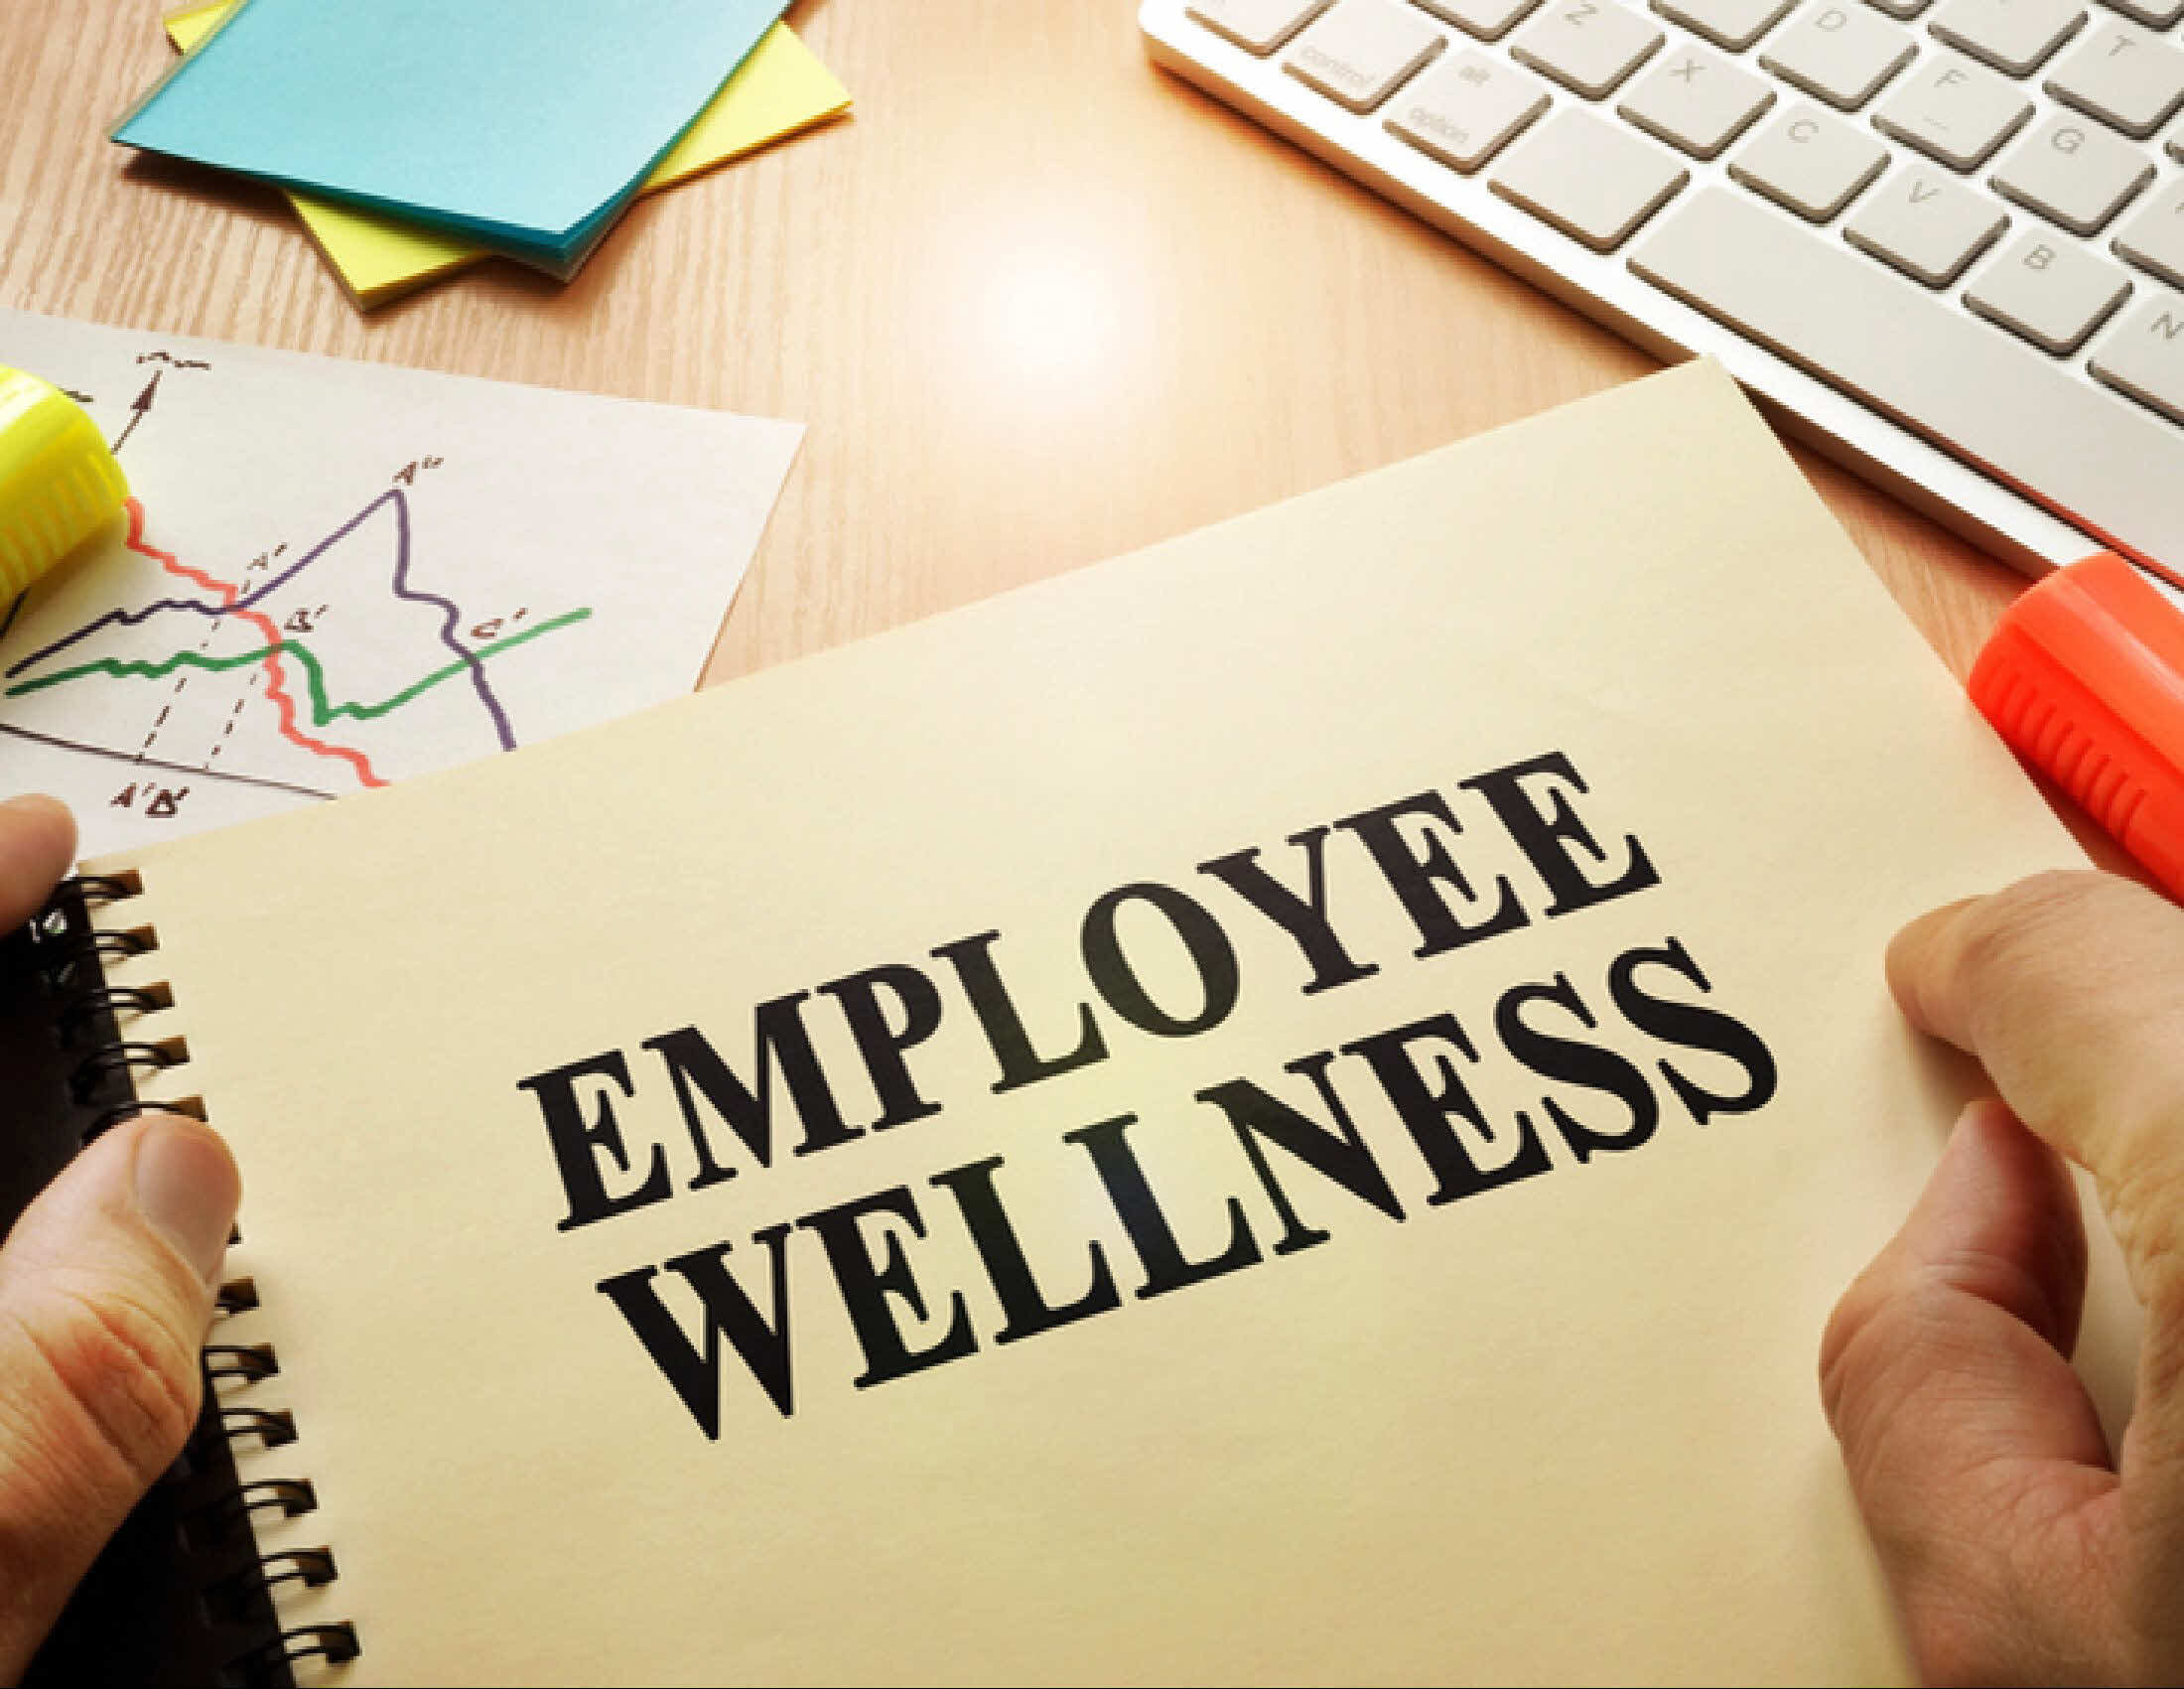 image of employee wellness handbook